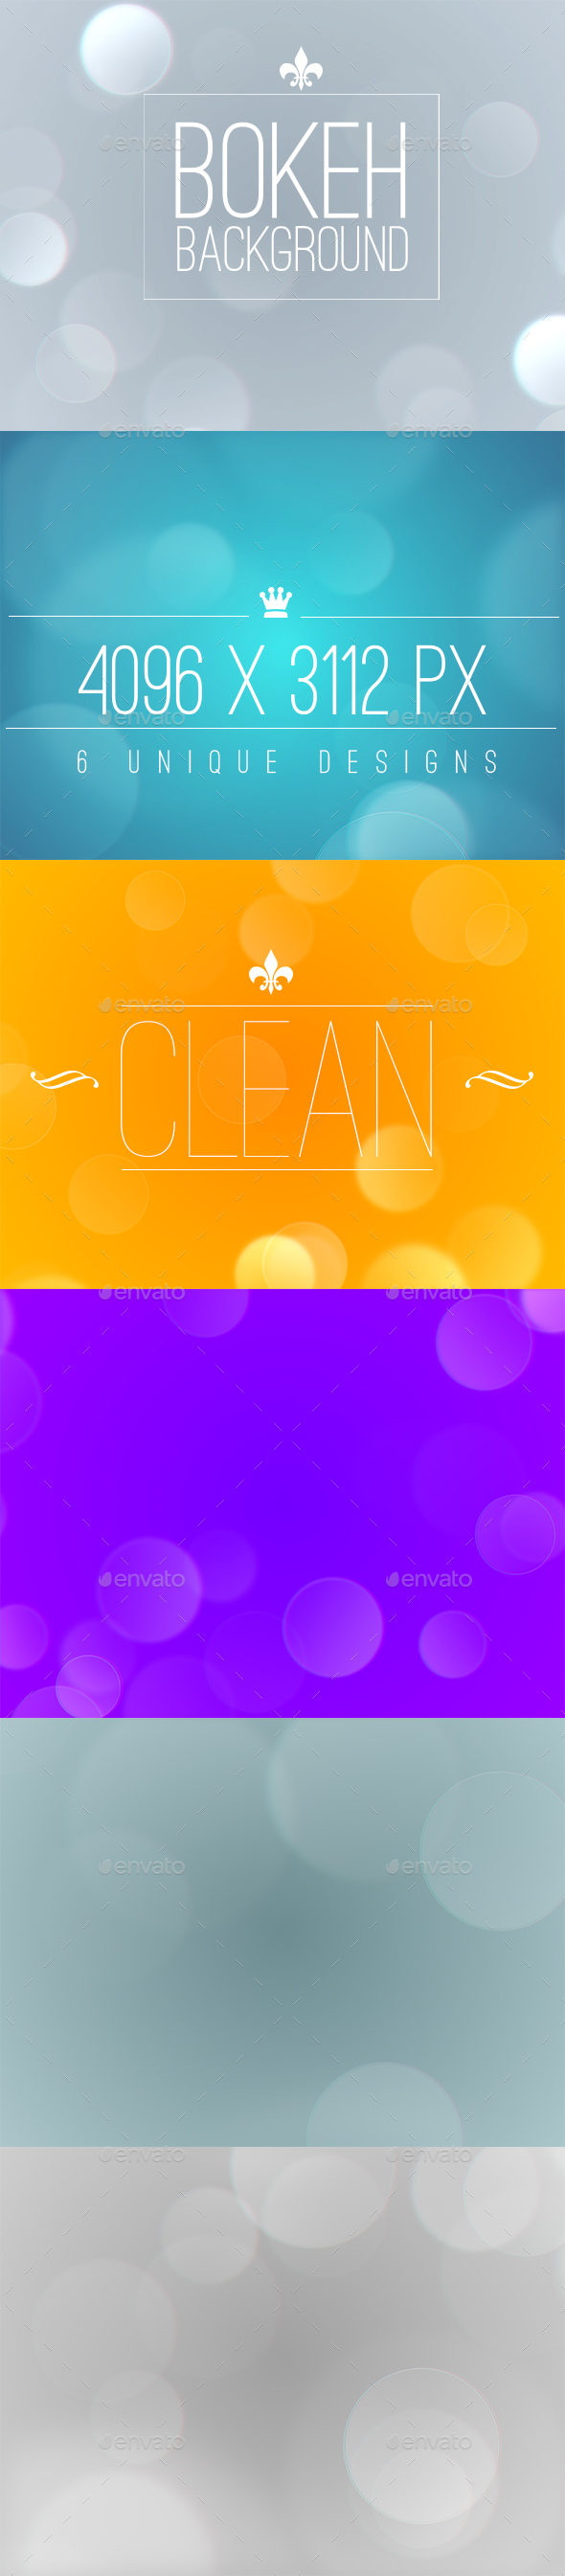 Bokeh - Abstract Backgrounds